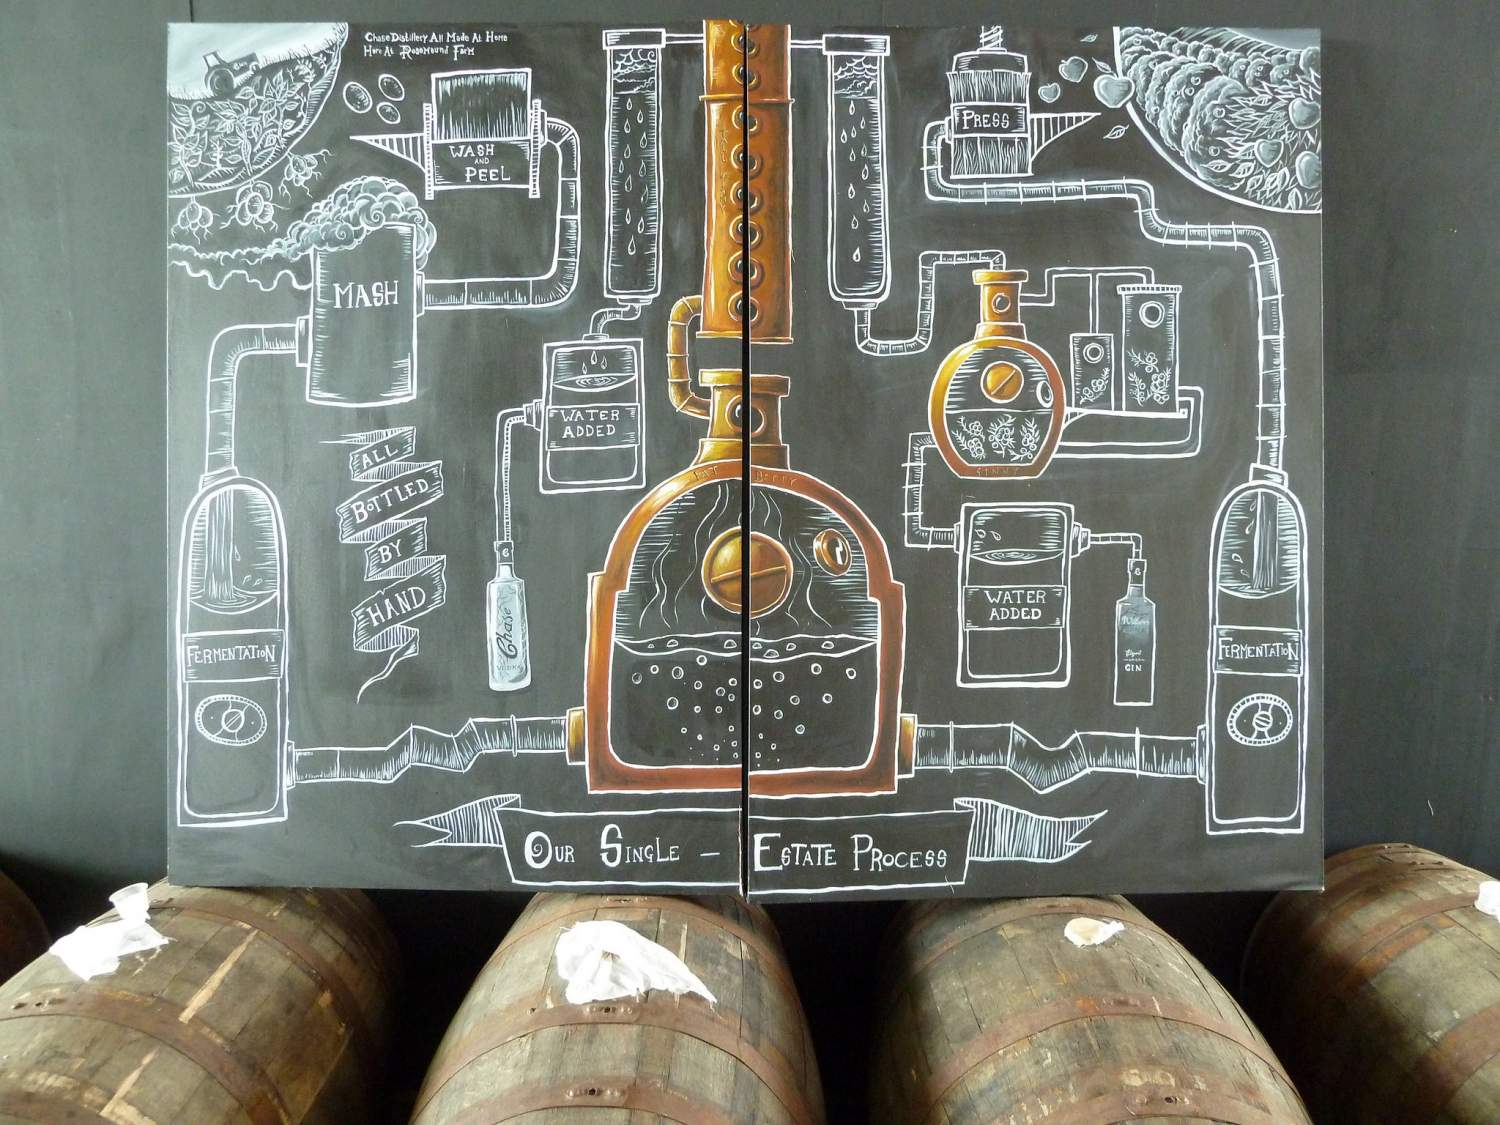 Chase gin distillery, Gin making process map, London